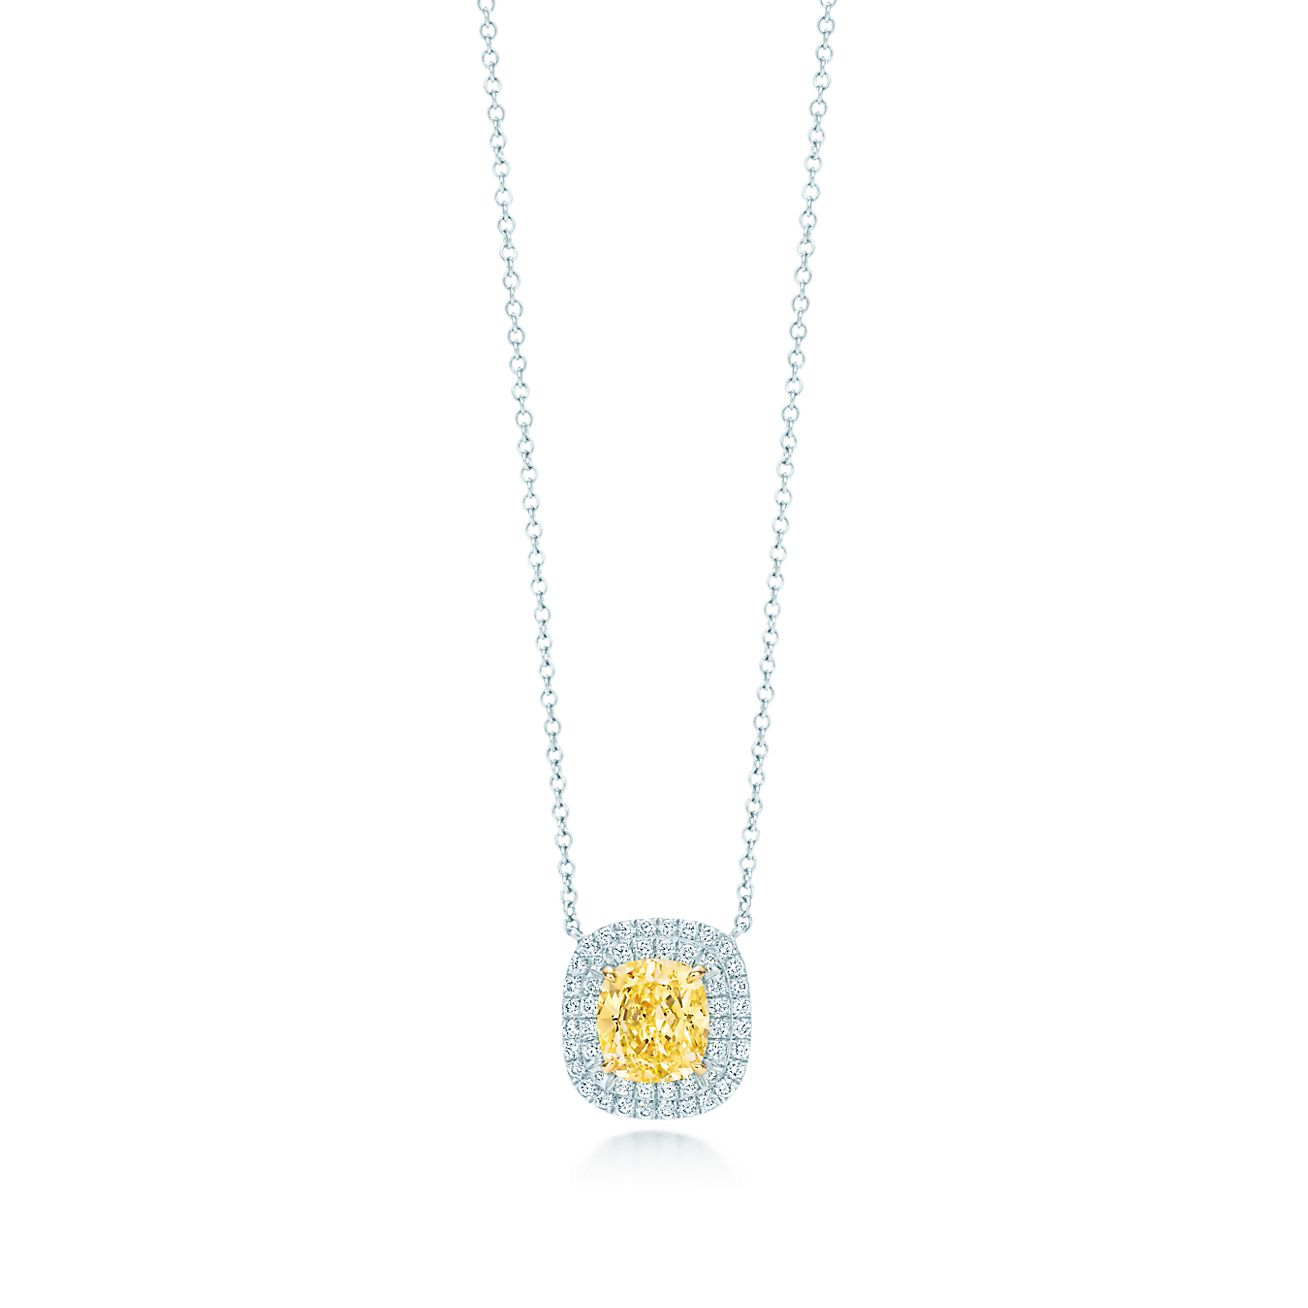 Tiffany soleste yellow and white diamond pendant in platinum and tiffany solesteyellow diamond pendant mozeypictures Image collections